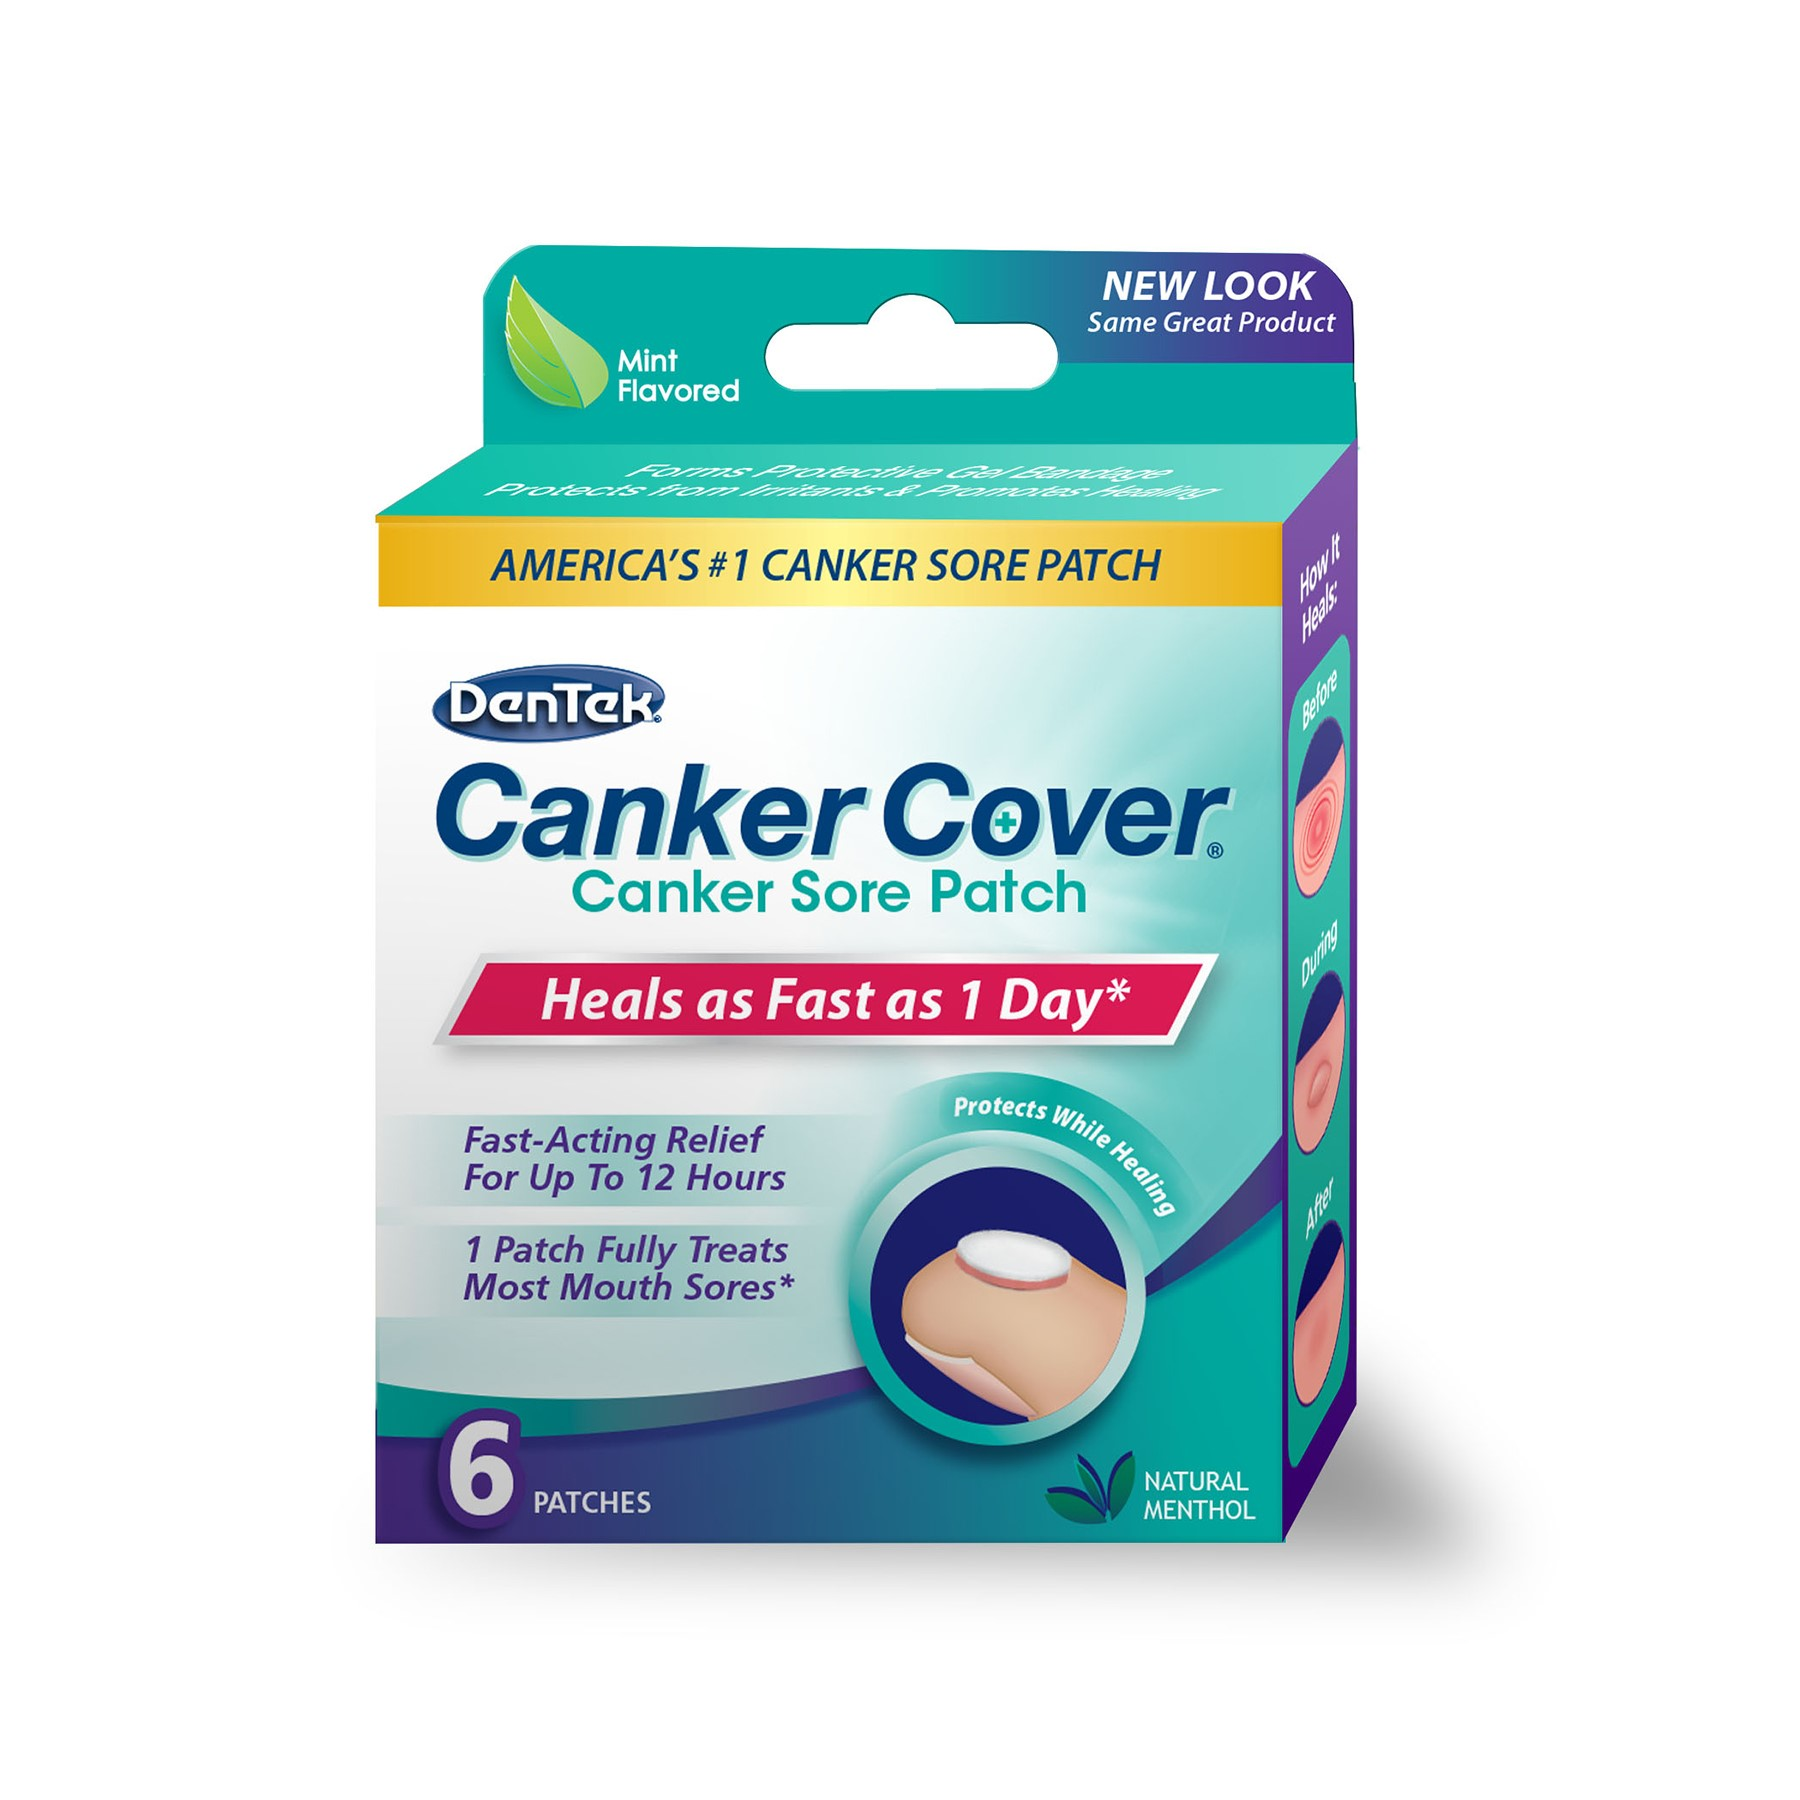 DenTek Canker Cover Canker Sore Patch Mint - 6 CT